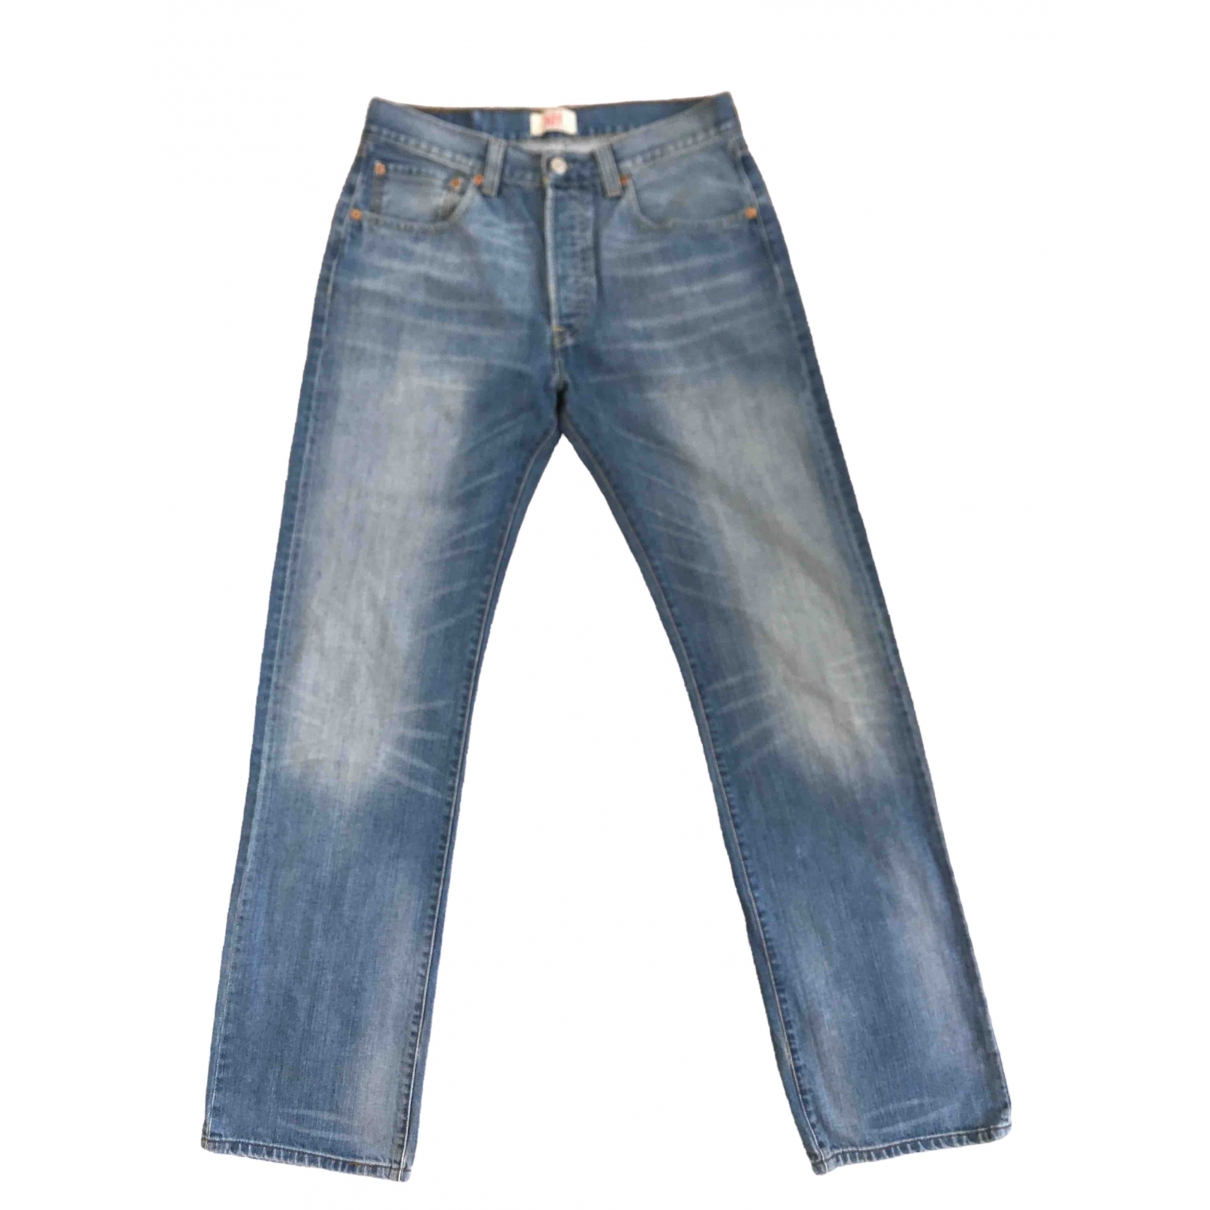 Levi's 501 Blue Cotton Jeans for Women 32 US